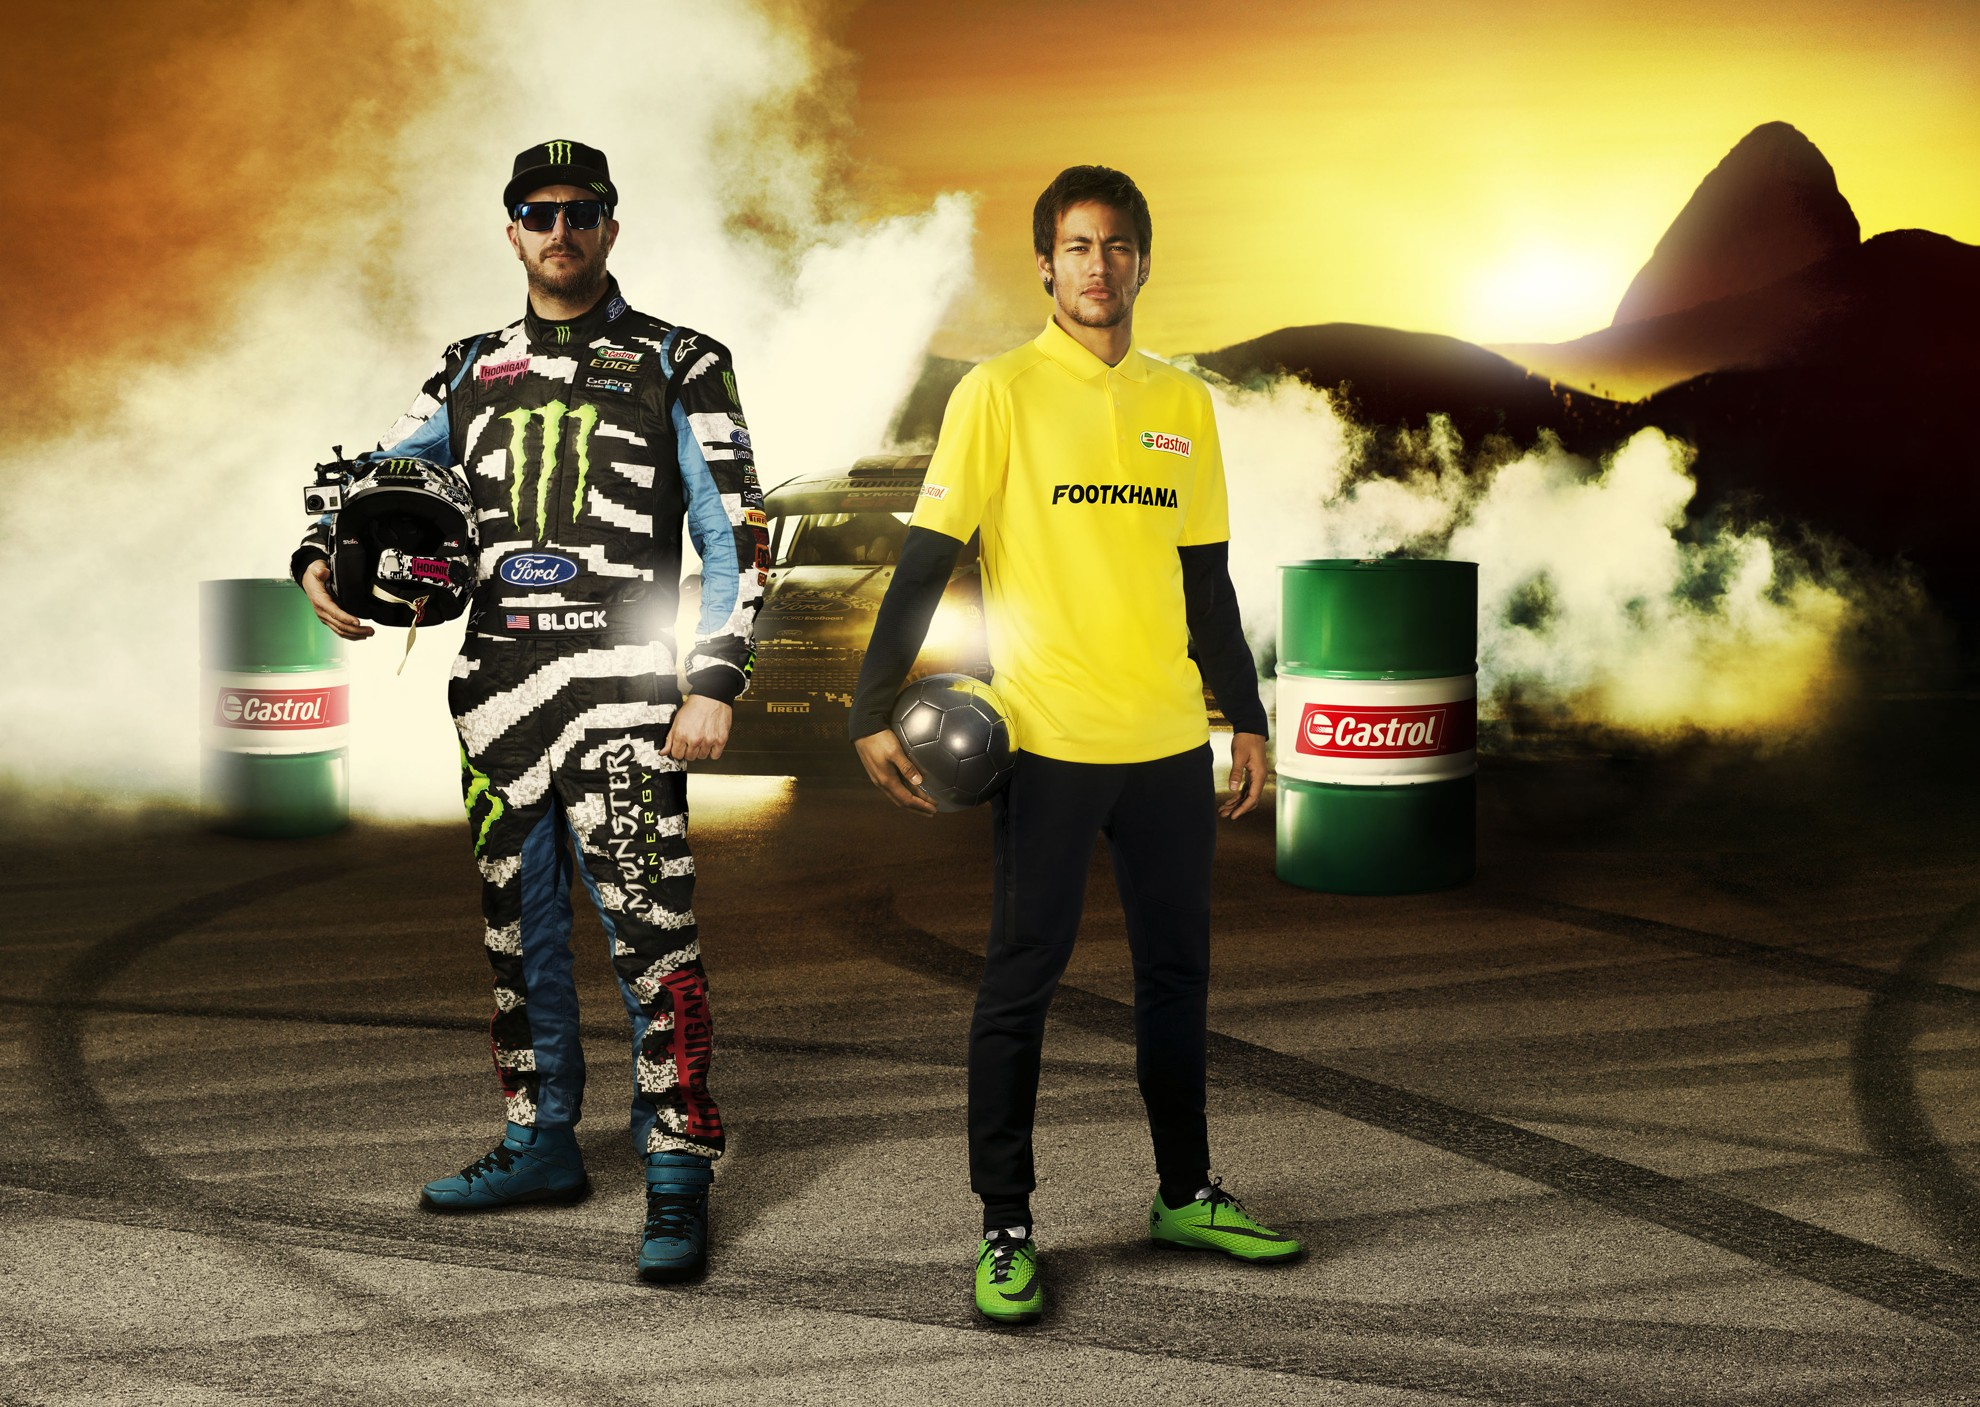 Neymar_Jr_and_Ken_Block